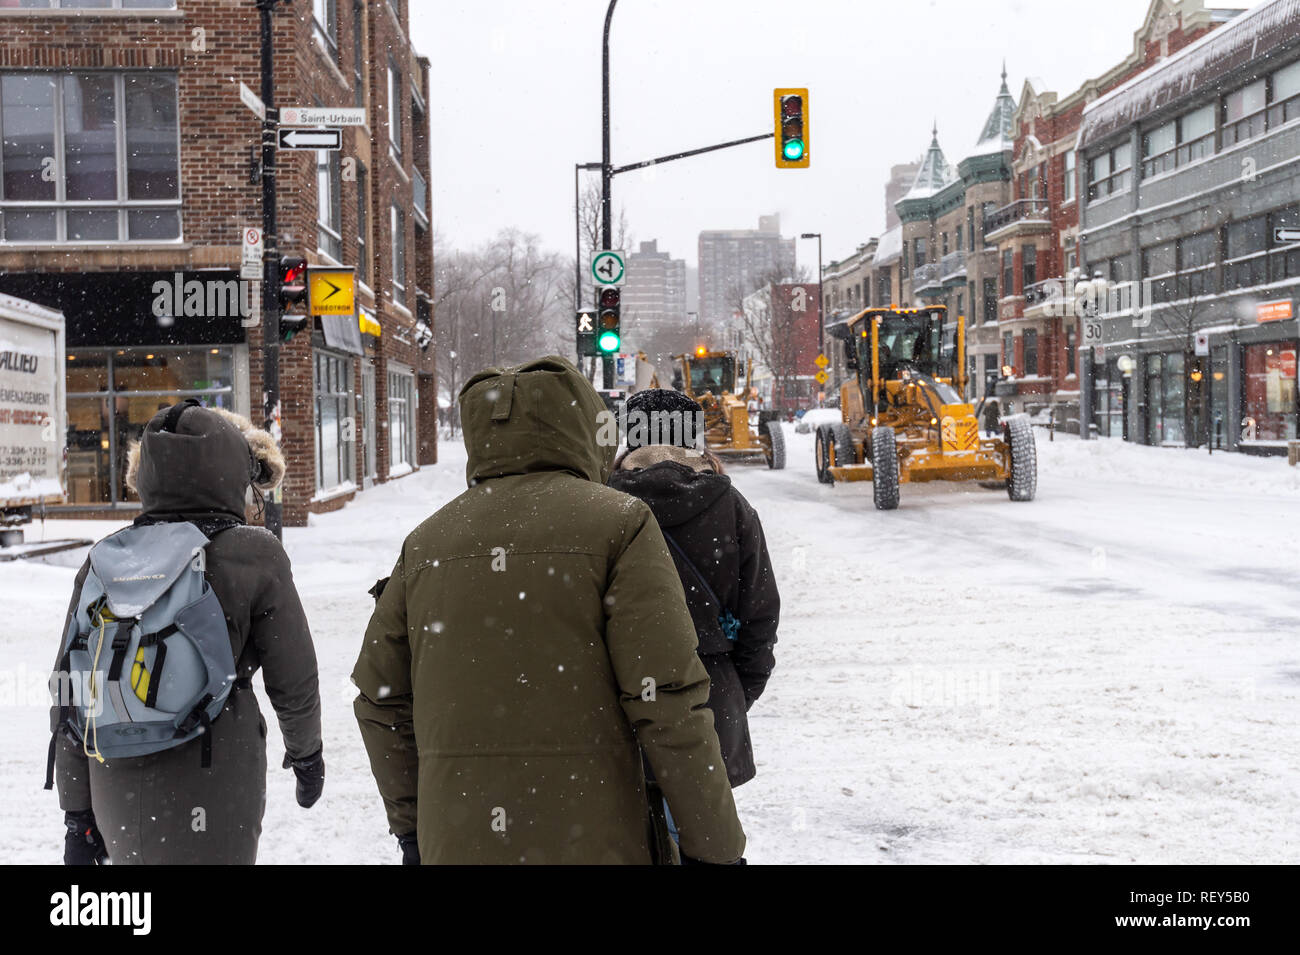 Montreal, Canada - 20 January 2019: Pedestrians walking on Mont-Royal Avenue during snow storm Stock Photo